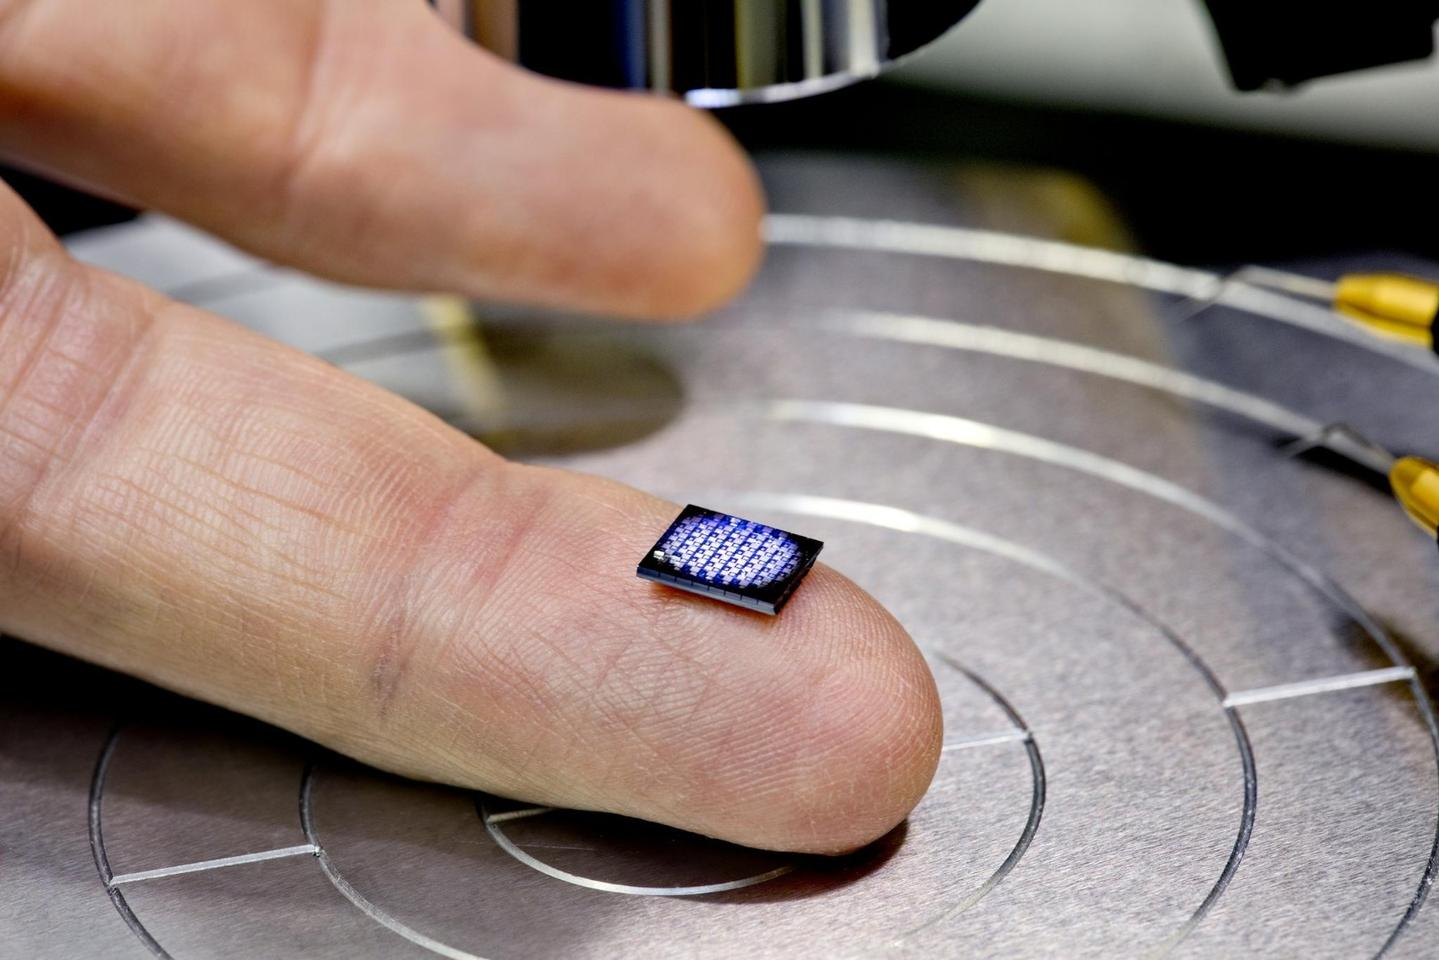 Among IBM's annual 5 in 5 list is the world's smallest computer, smaller than a grain of salt – seen here as the tiny white dot on the lefthand corner of the chip